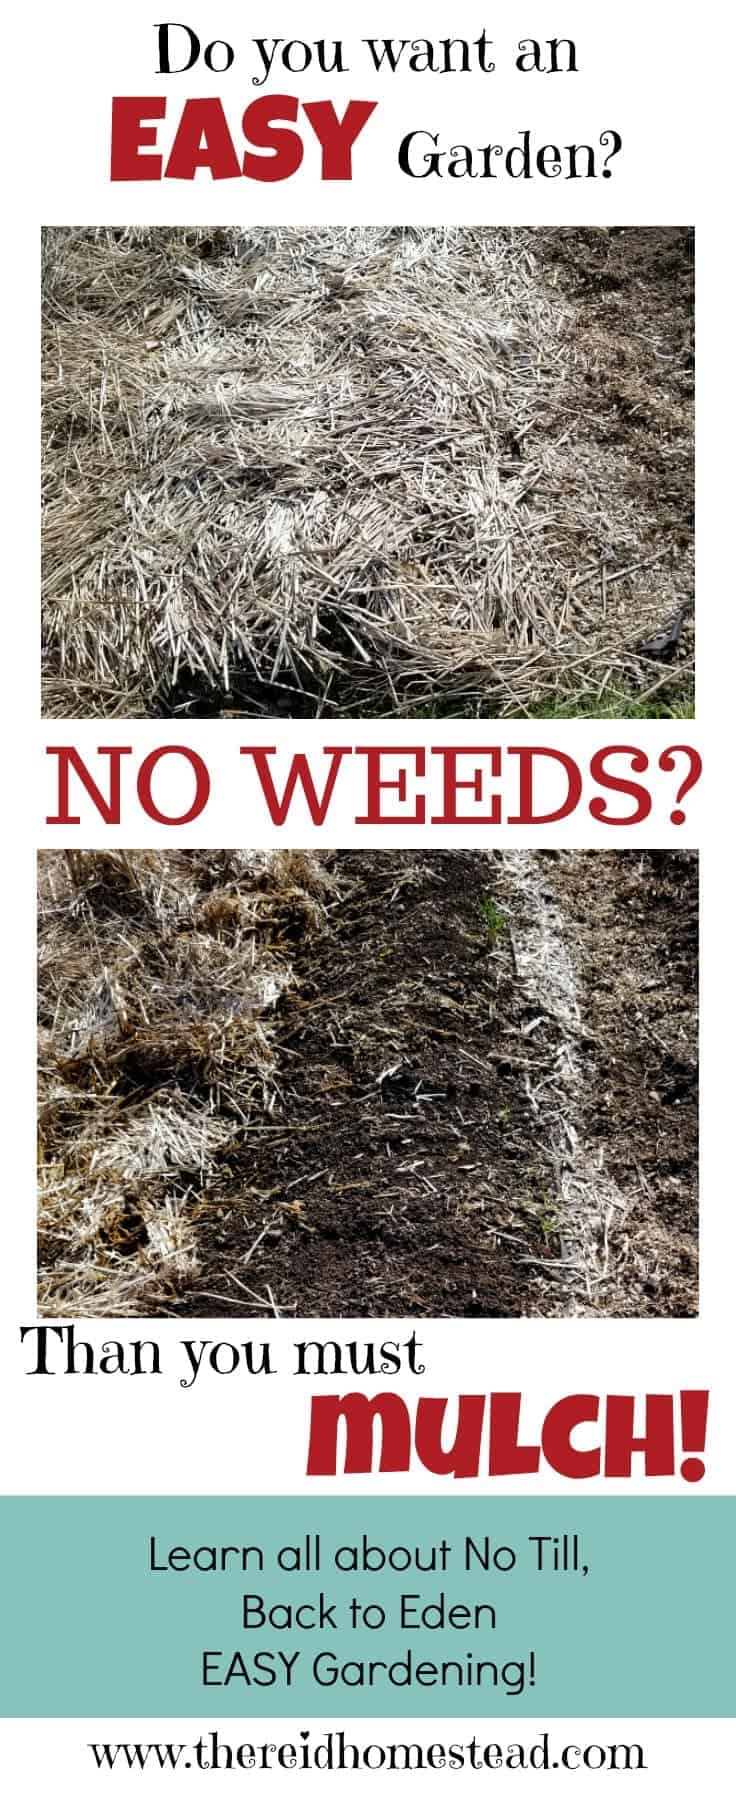 Want to learn how to garden with no weeds? Learn the secret of mulch and all the benefits it has in the garden. Easy Gardening! No Weeding! The Reid Homestead